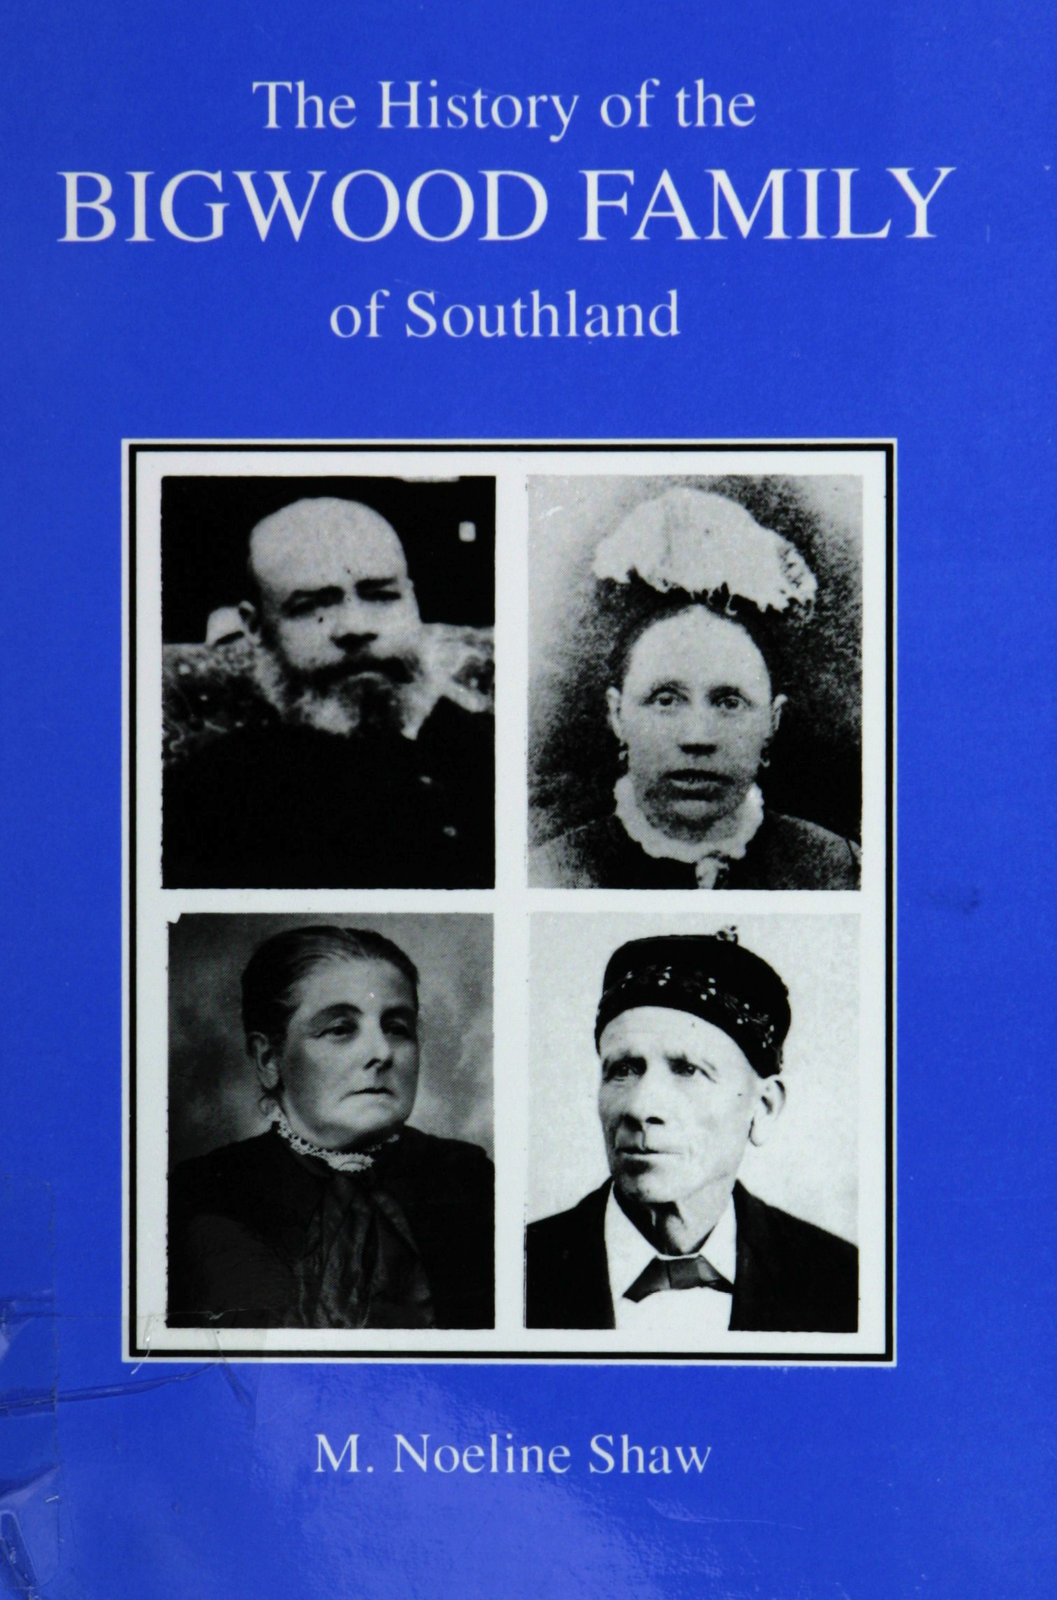 The history of the Bigwood family of Southland